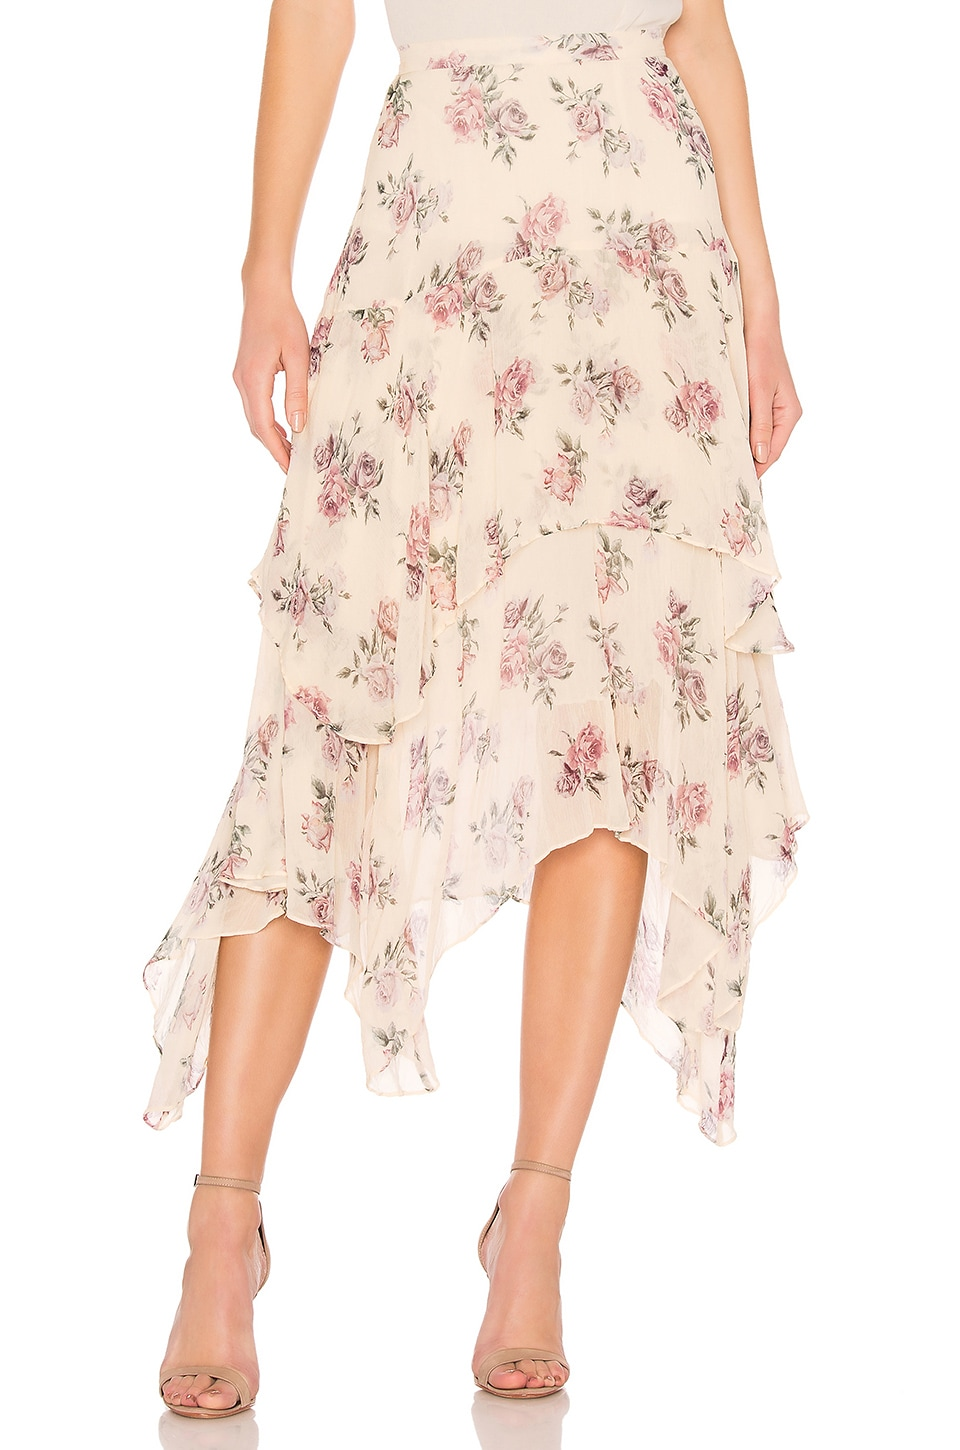 LoveShackFancy Alex Silk Skirt in Dream